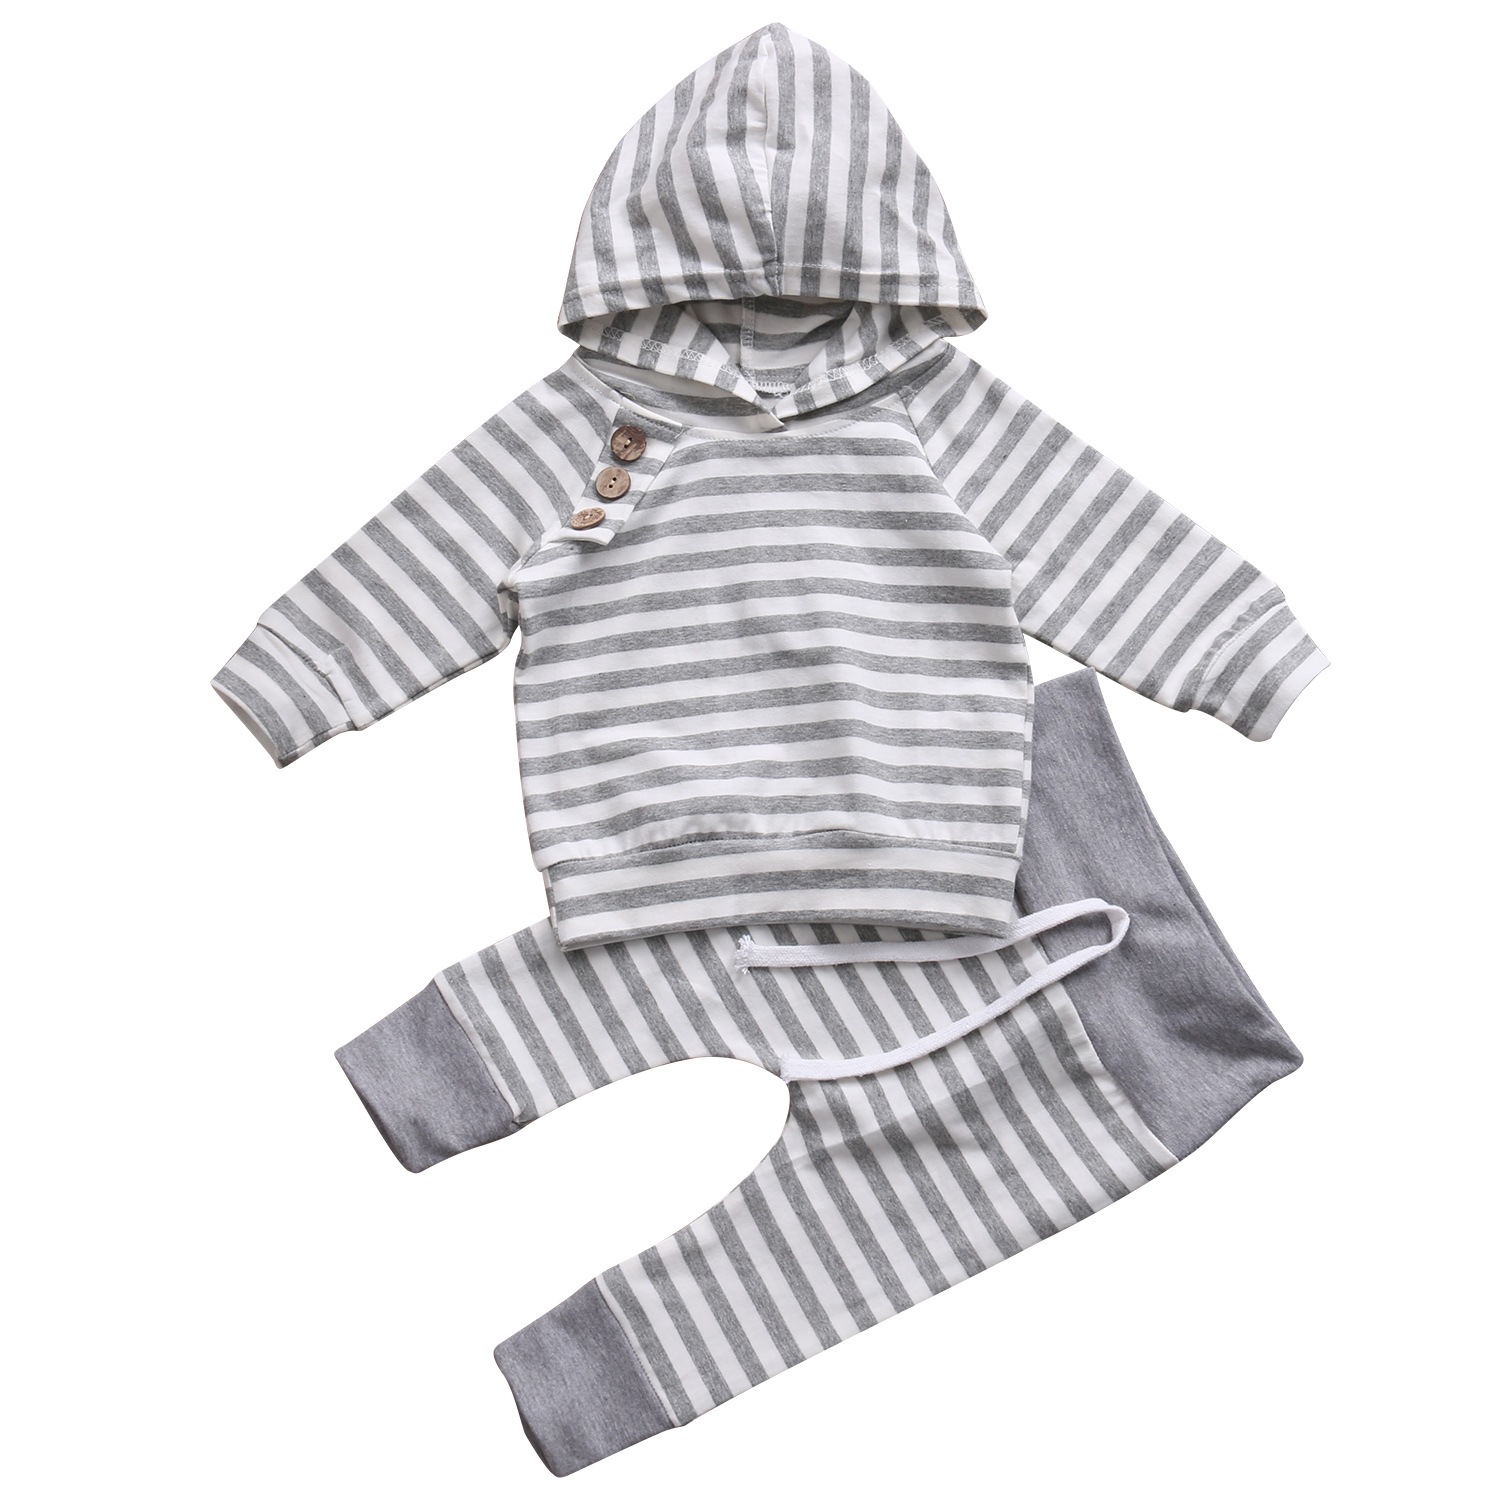 Toddler Newborn Infant Kids Baby Boy Girl Hoodie Tops Long Sleeve Shirt Pants Striped Outfit 2Pcs Set Clothes 2Pcs Set 0 24m newborn infant baby boy girl clothes set romper bodysuit tops rainbow long pants hat 3pcs toddler winter fall outfits